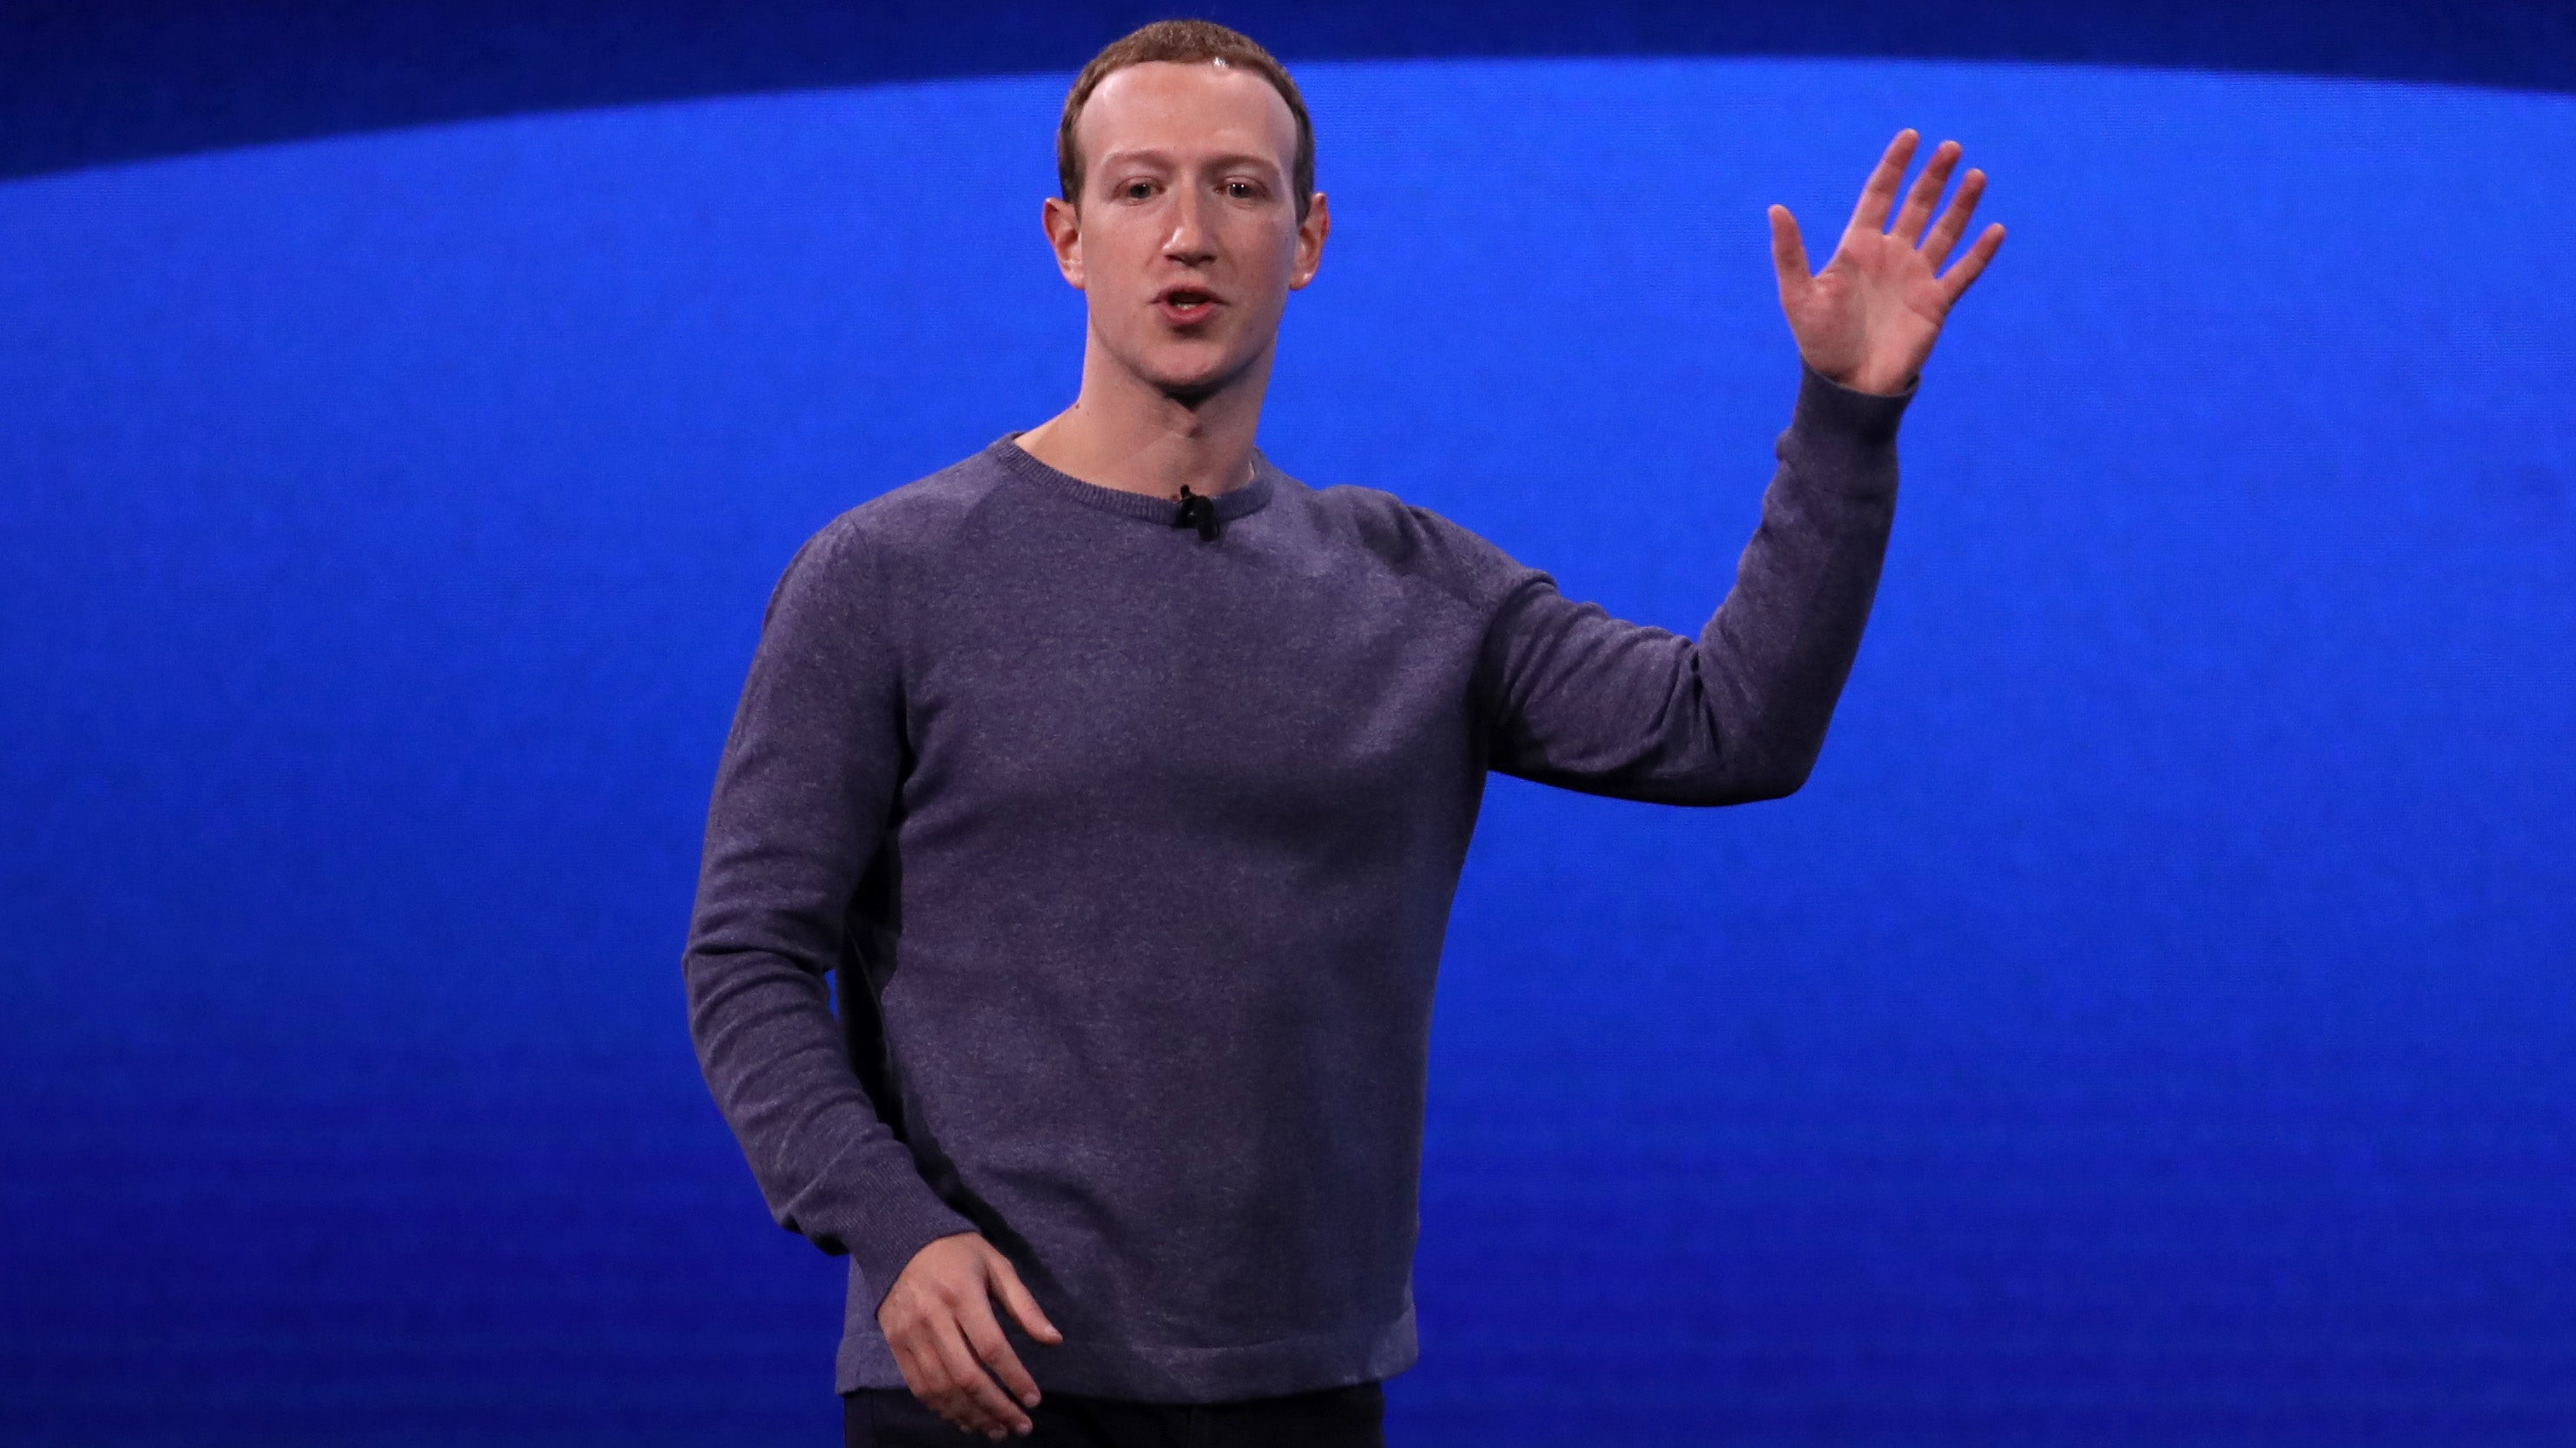 Mark Zuckerberg Declines To Make Mark Zuckerberg Less Powerful